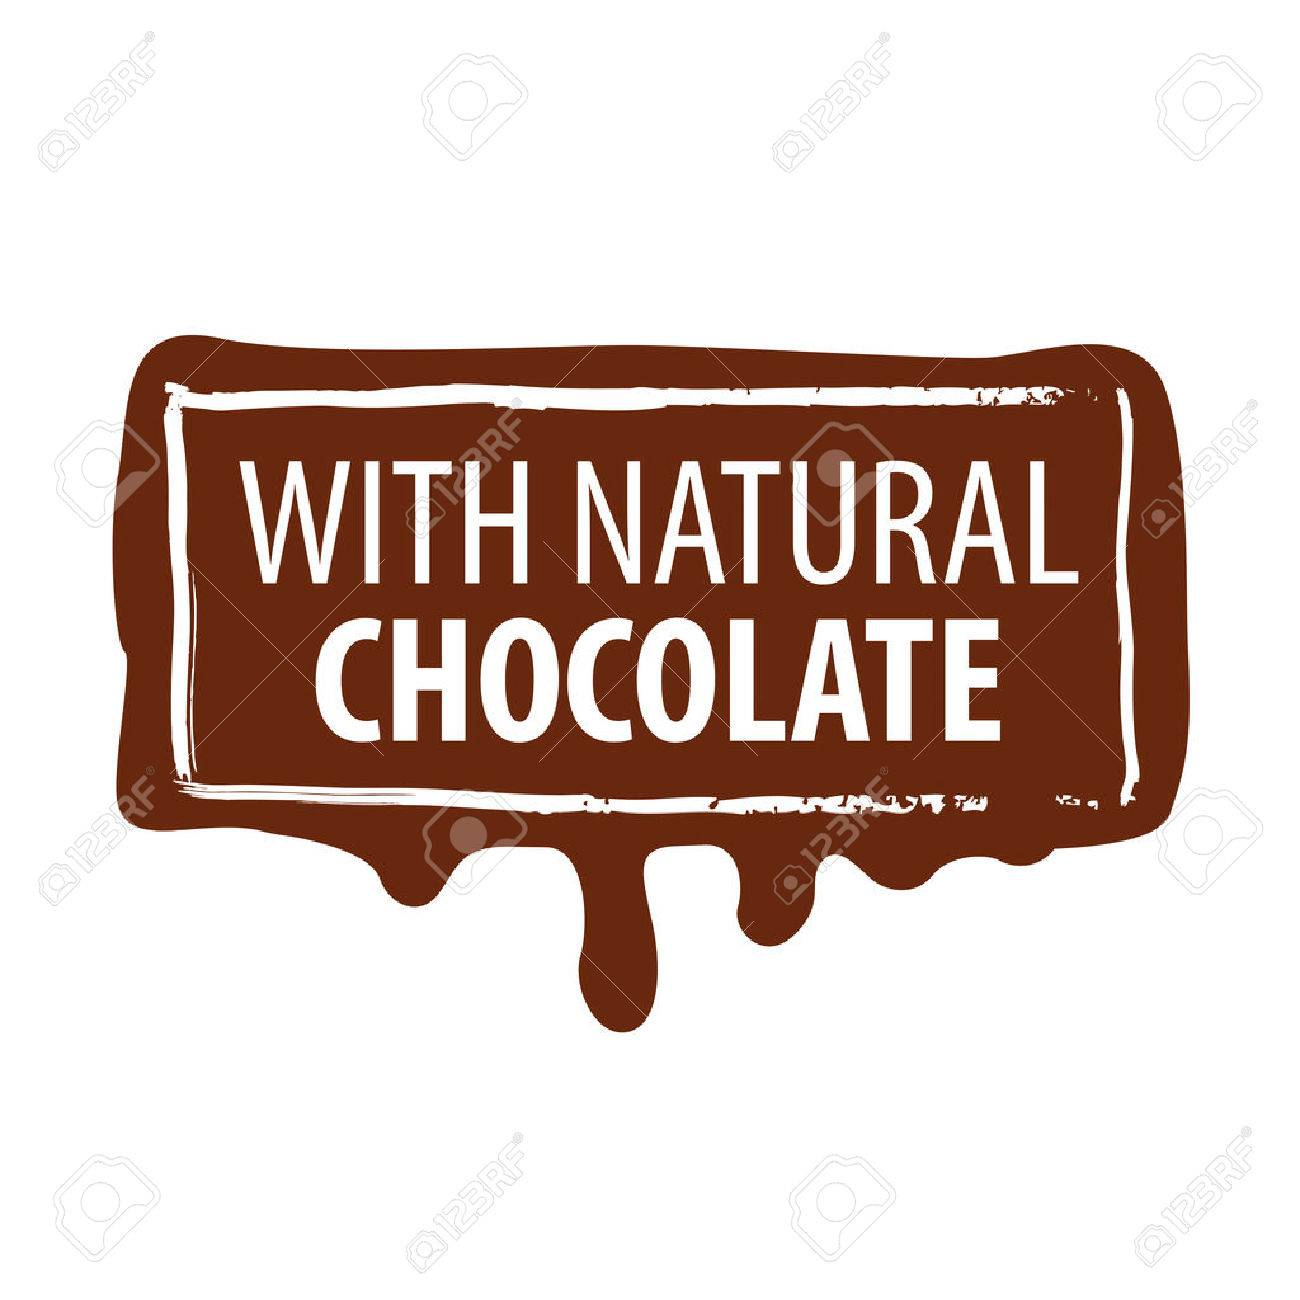 Vector logo printing for natural chocolate royalty free cliparts vector logo printing for natural chocolate stock vector 41764697 sciox Choice Image